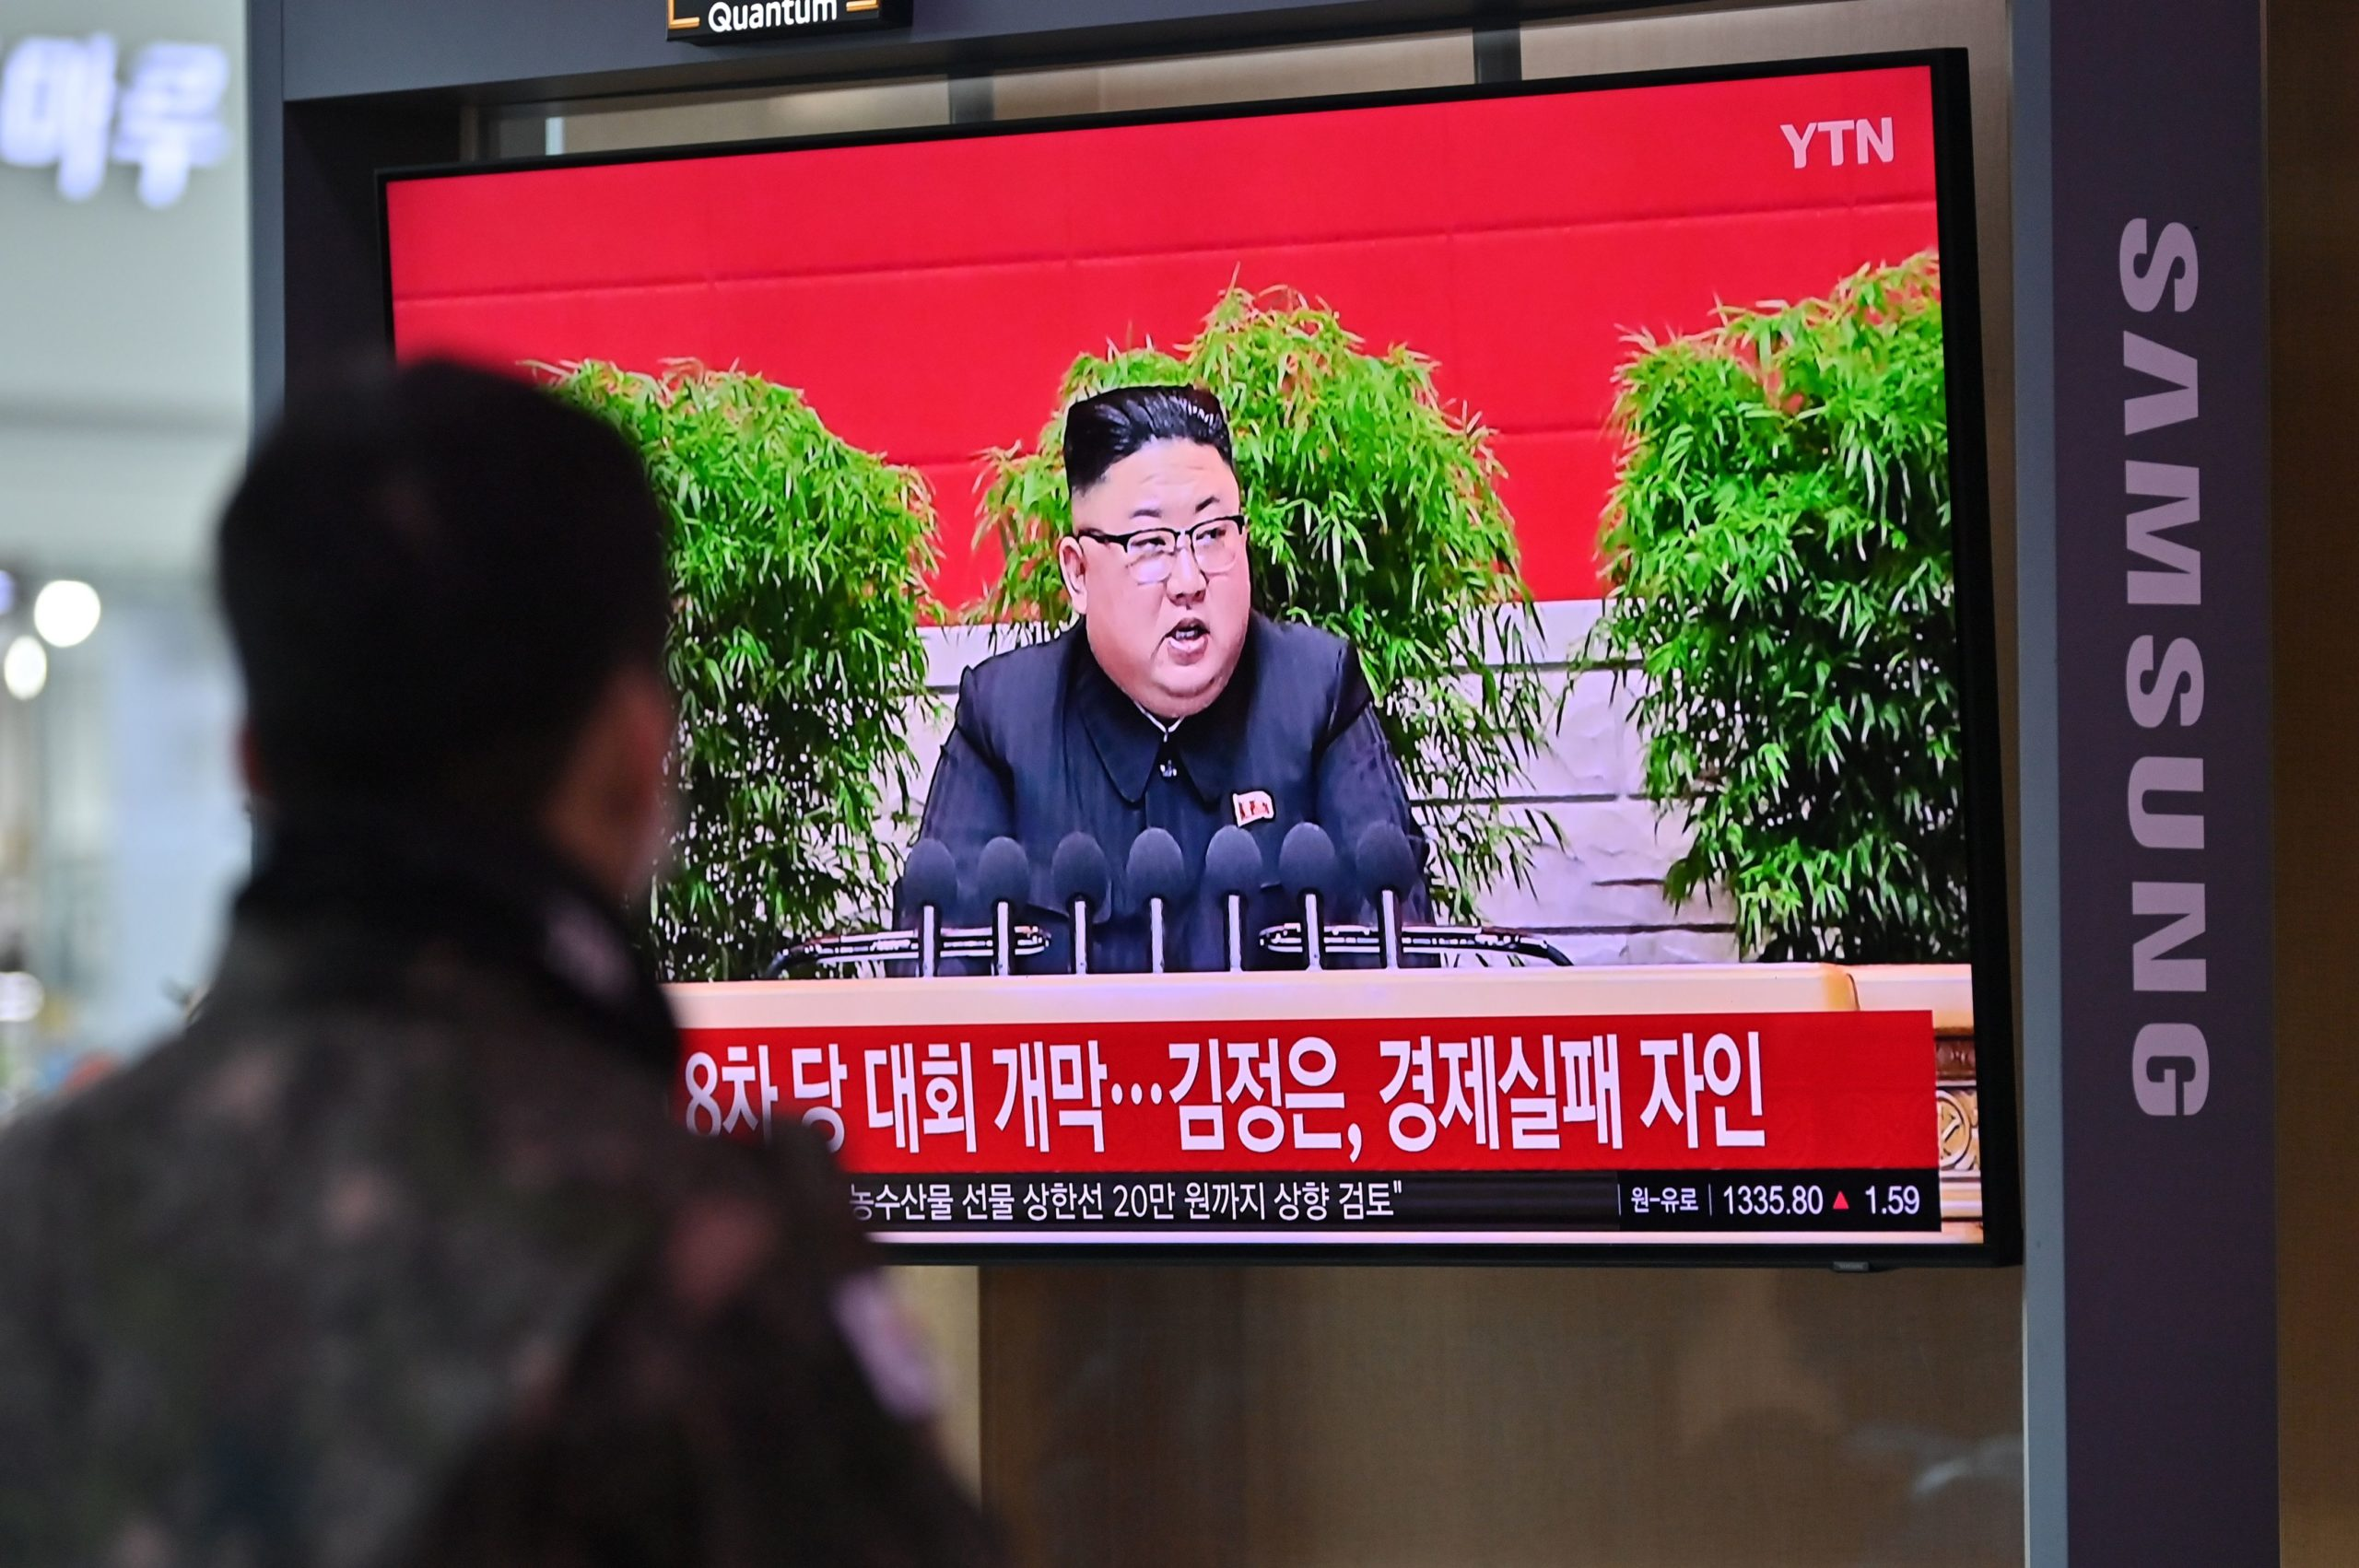 A man watches a television screen showing news footage of North Korean leader Kim Jong Un in Seoul on Jan. 6. (Jung Yeon-je/AFP via Getty Images)